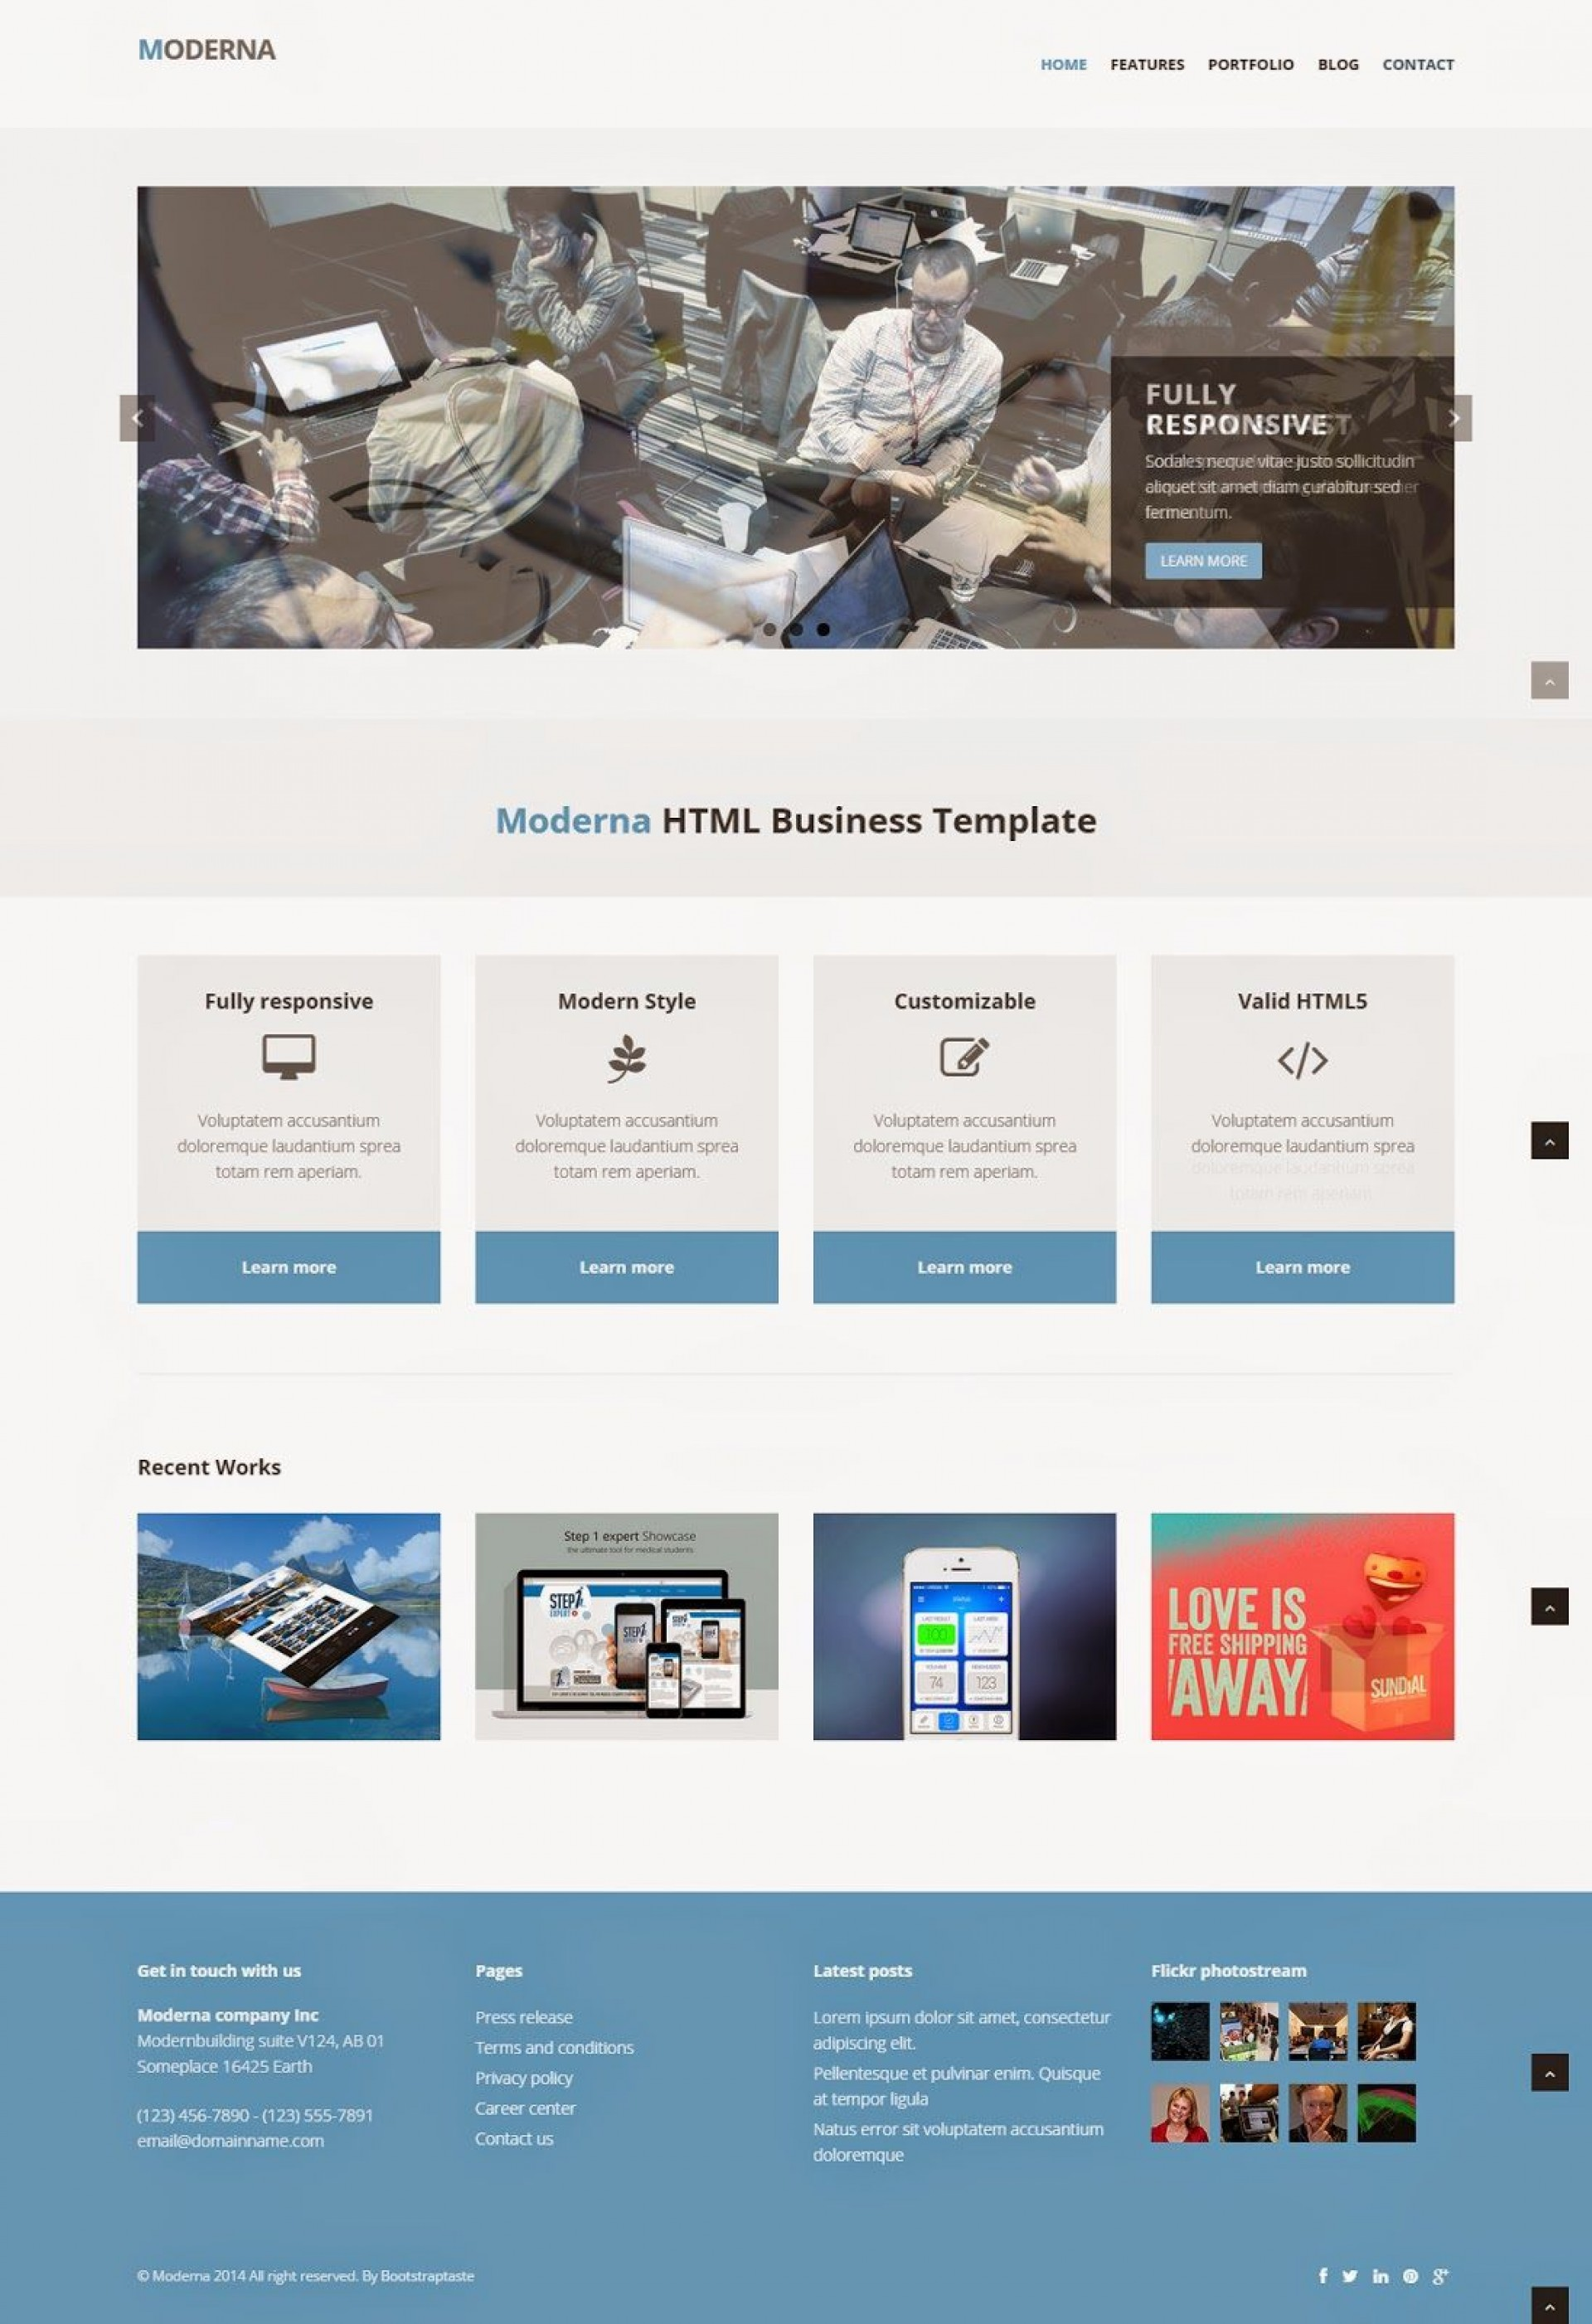 009 Frightening Free Website Template Download Html And Cs Jquery For Ecommerce Concept 1920